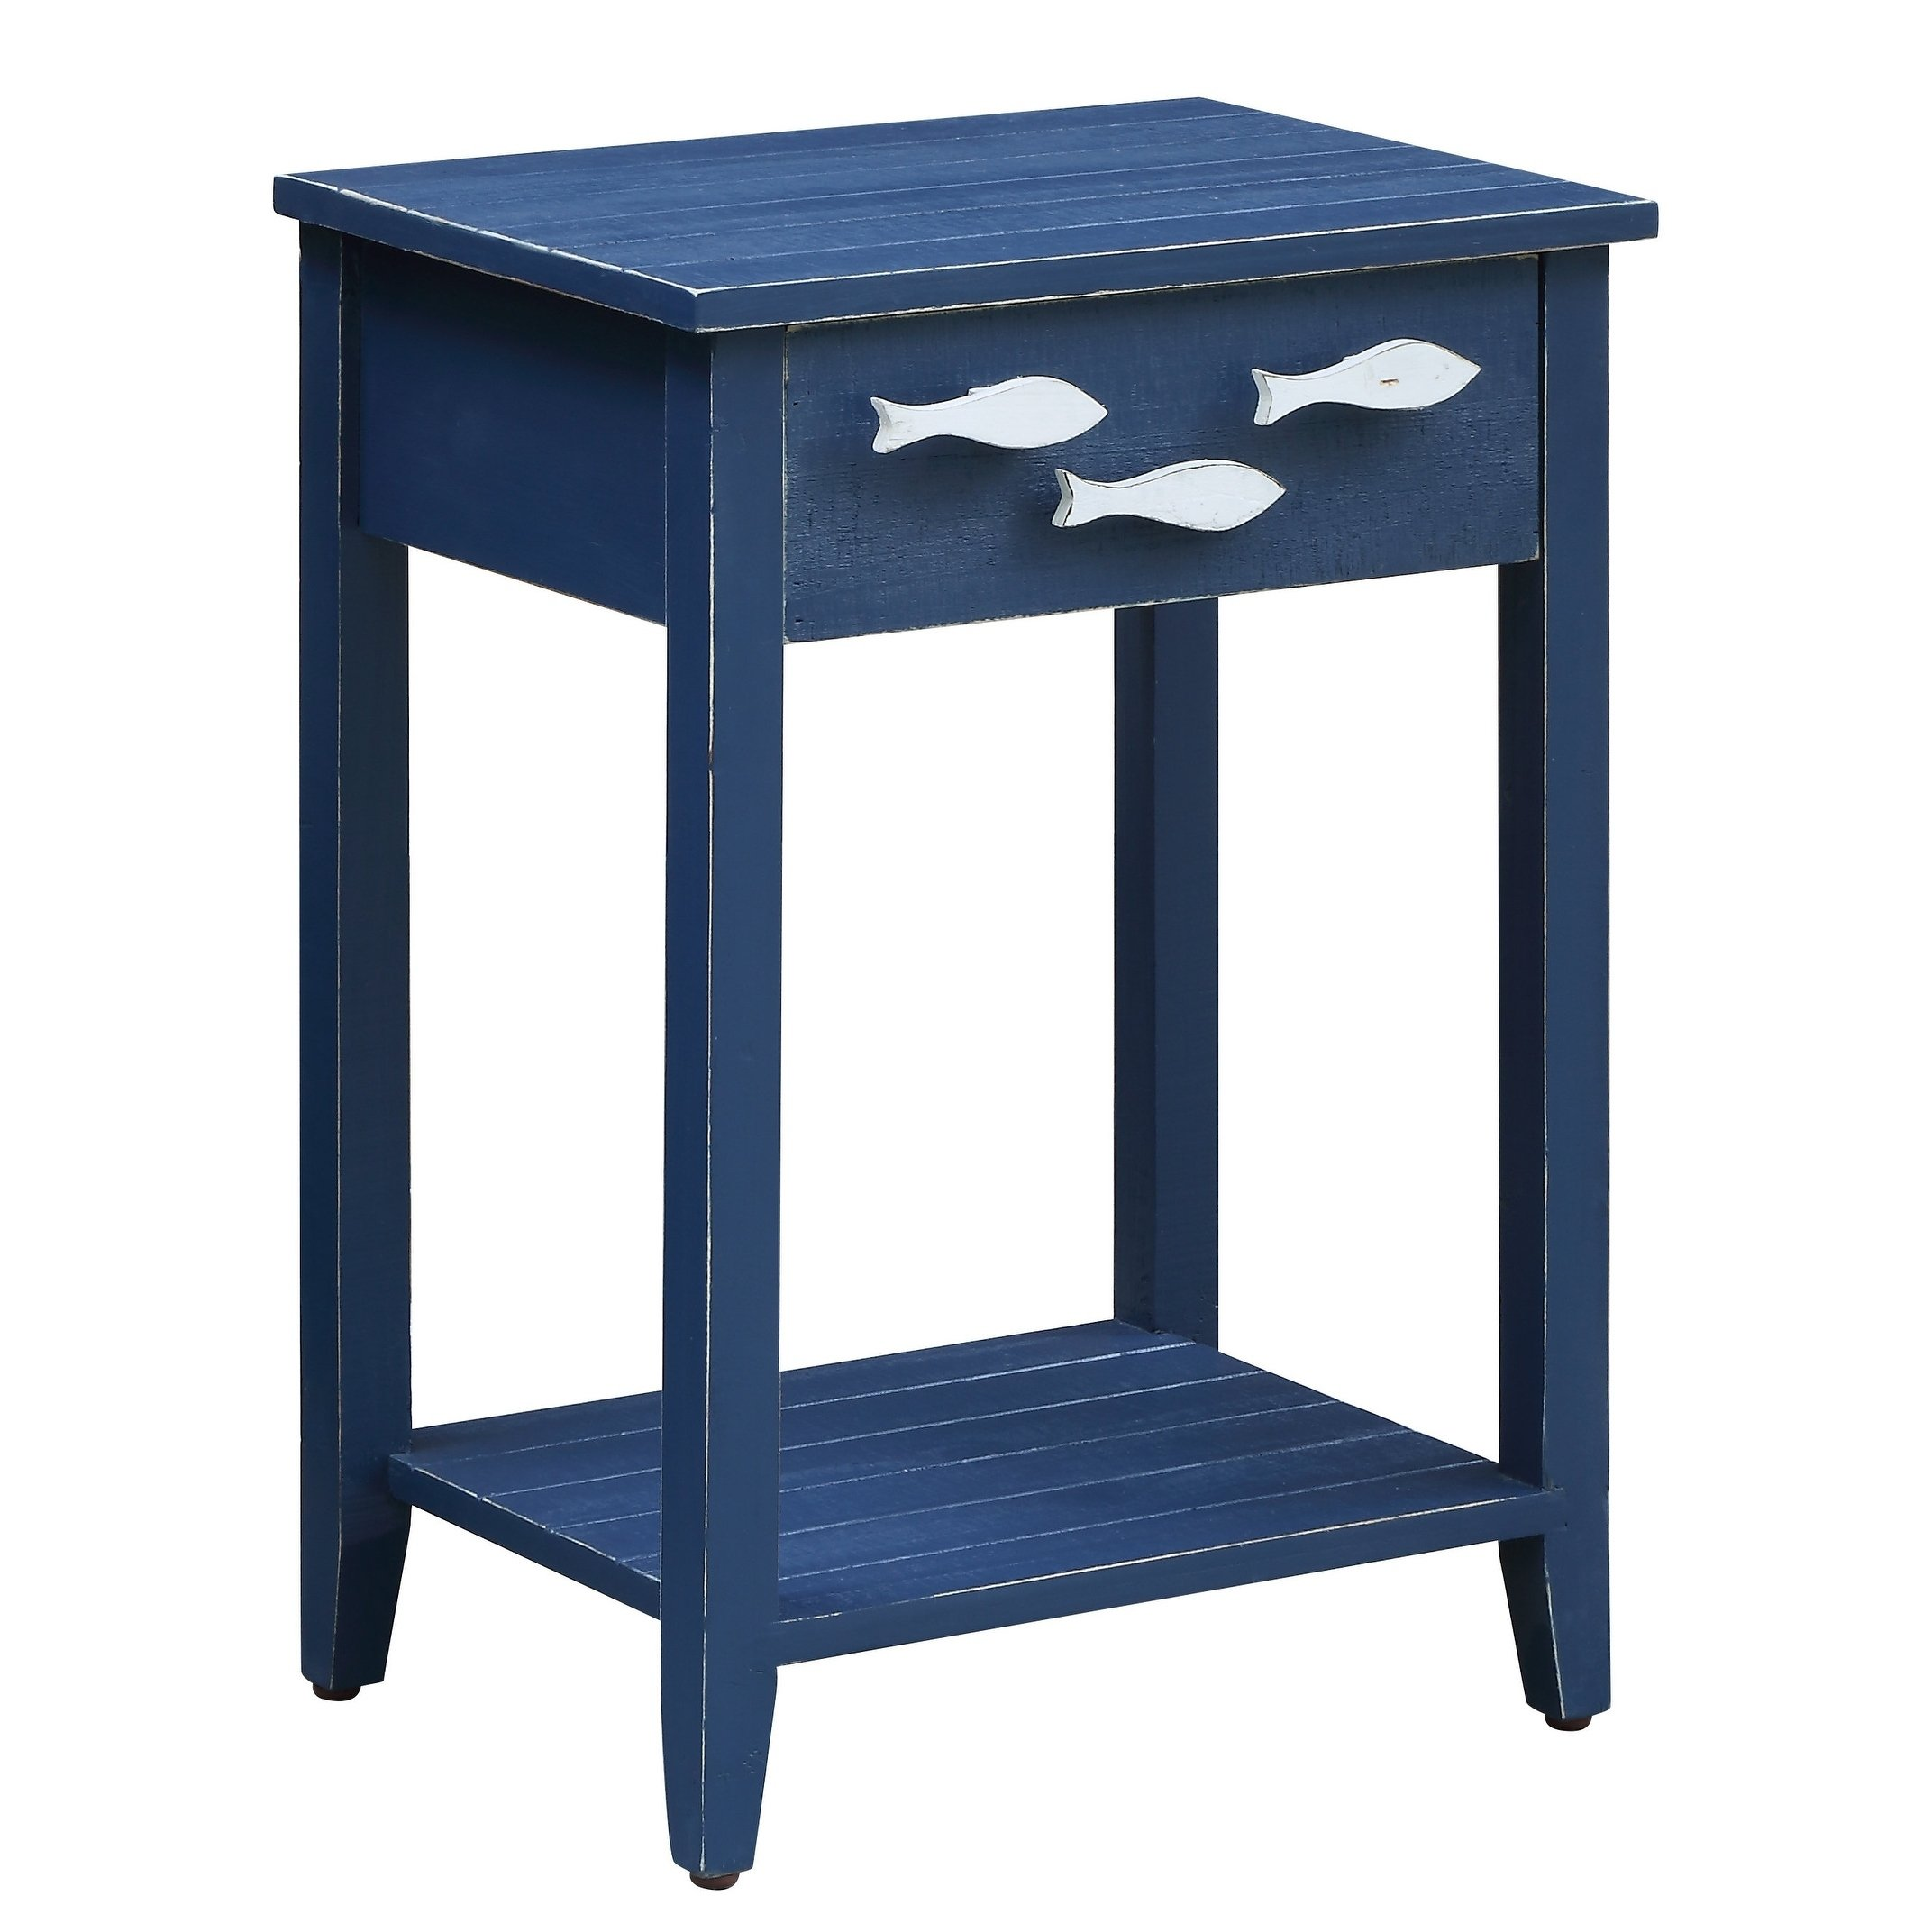 nautical navy drawer accent table with fish hardware free shipping today white round pedestal side telephone ikea smoked glass coffee dog bath tub island chairs small silver solid